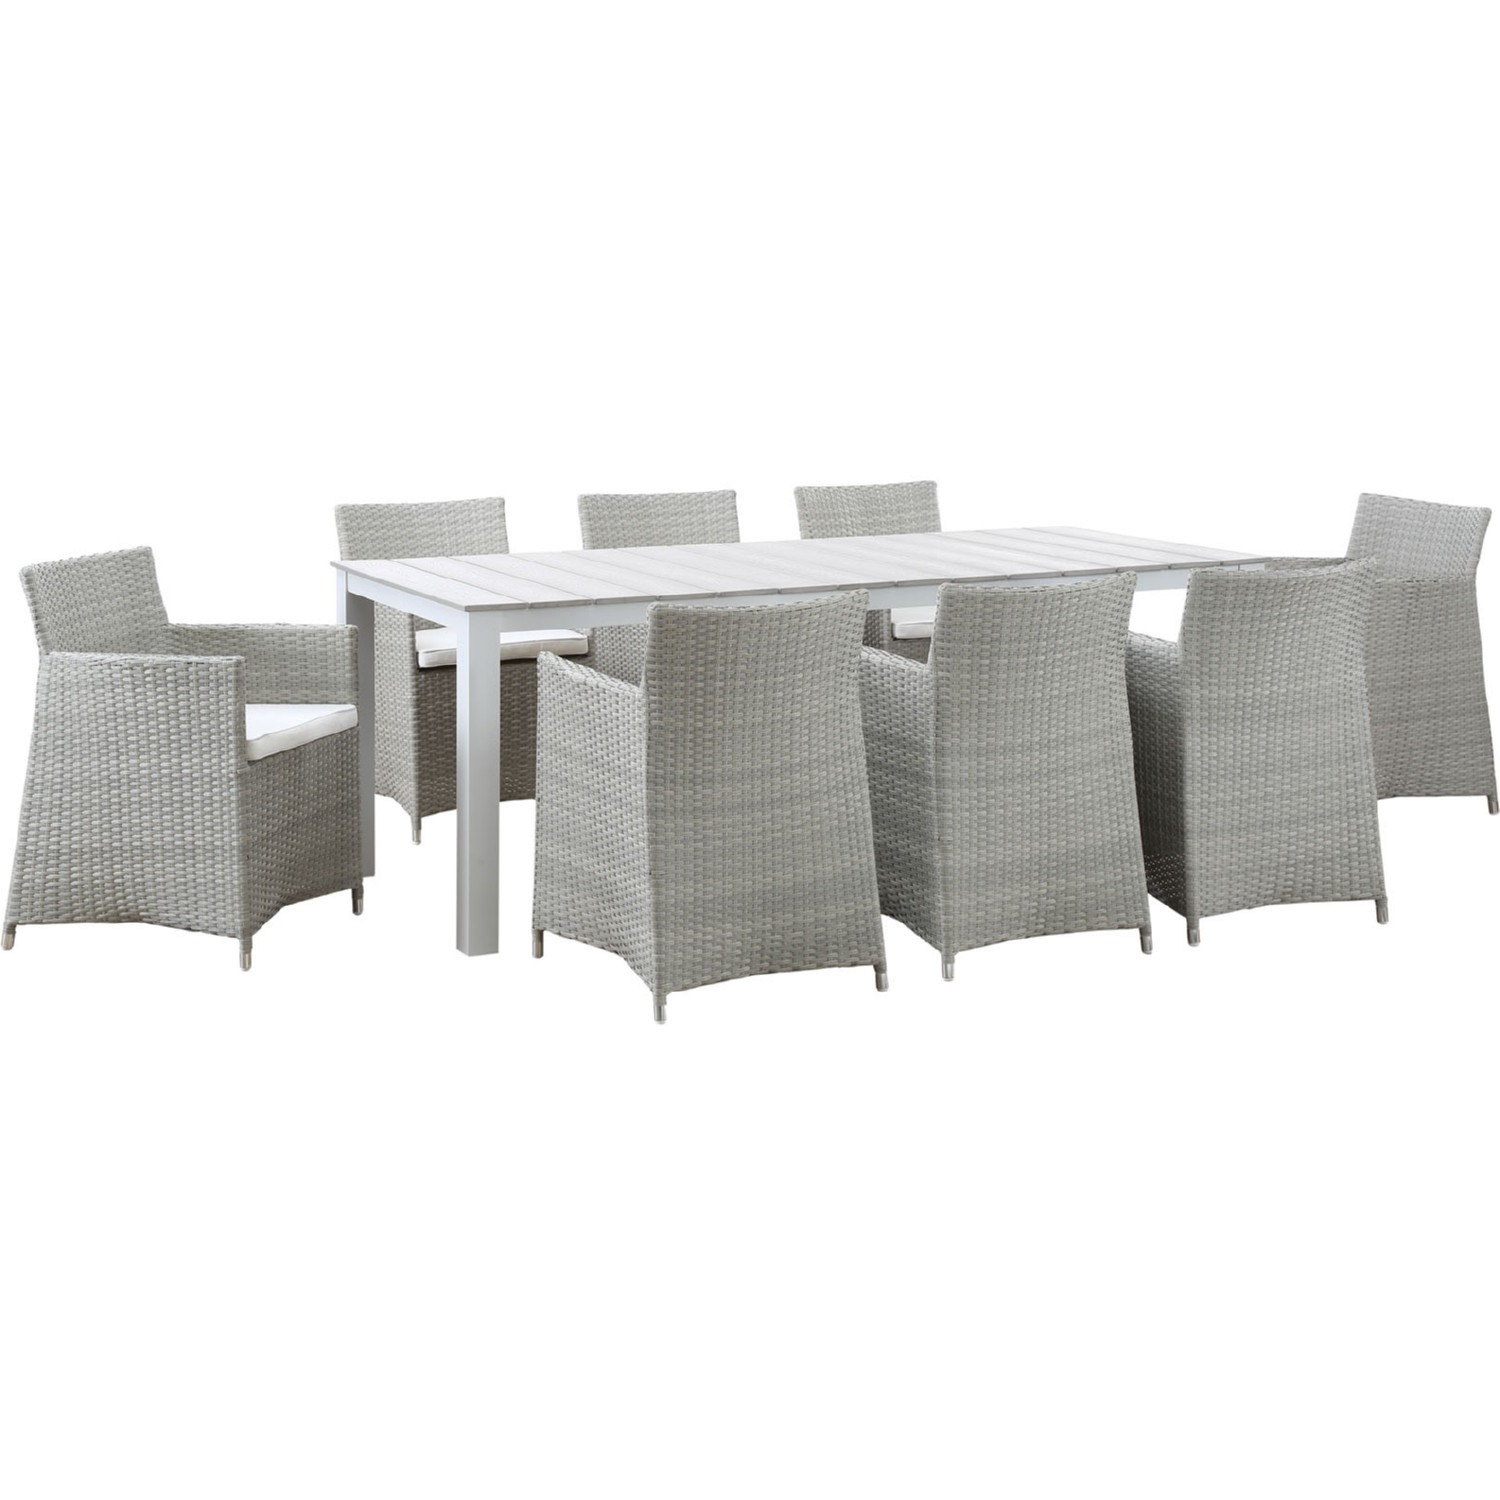 Modern 9-Piece Dining Set In Gray Rattan Weave - image-0